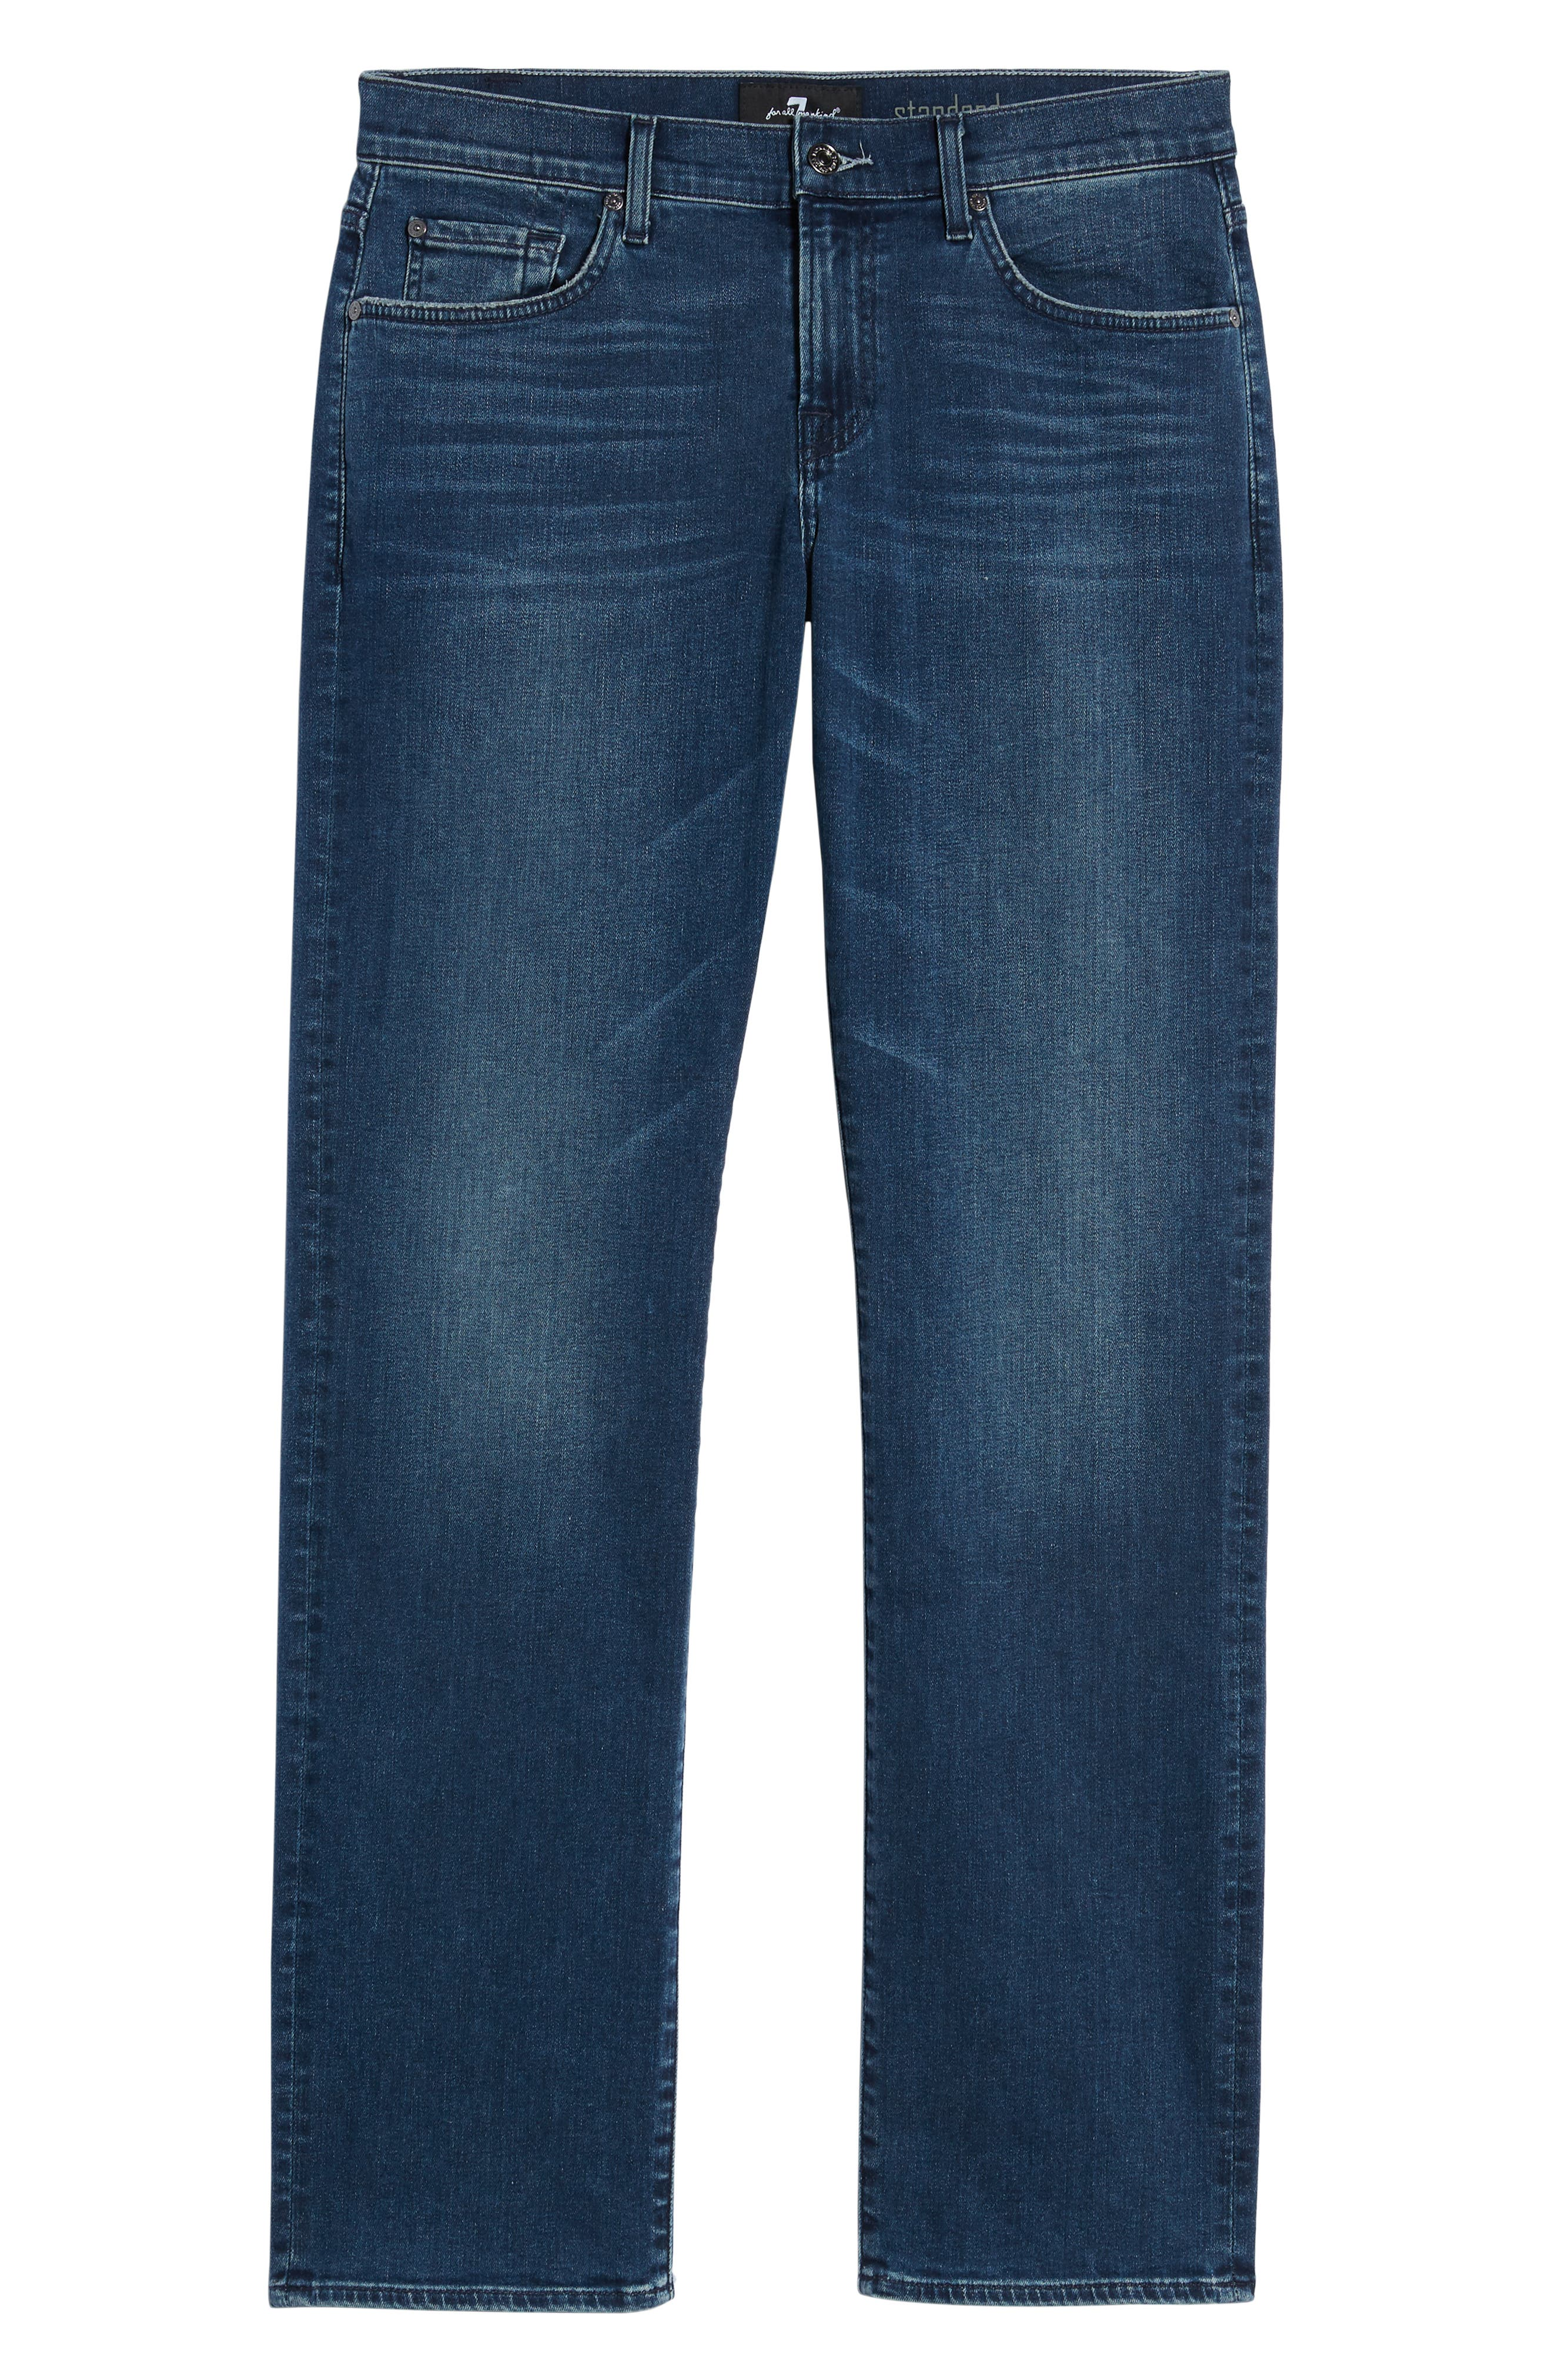 7 FOR ALL MANKIND<SUP>®</SUP>, Standard Straight Leg Jeans, Alternate thumbnail 6, color, INVINCIBLE